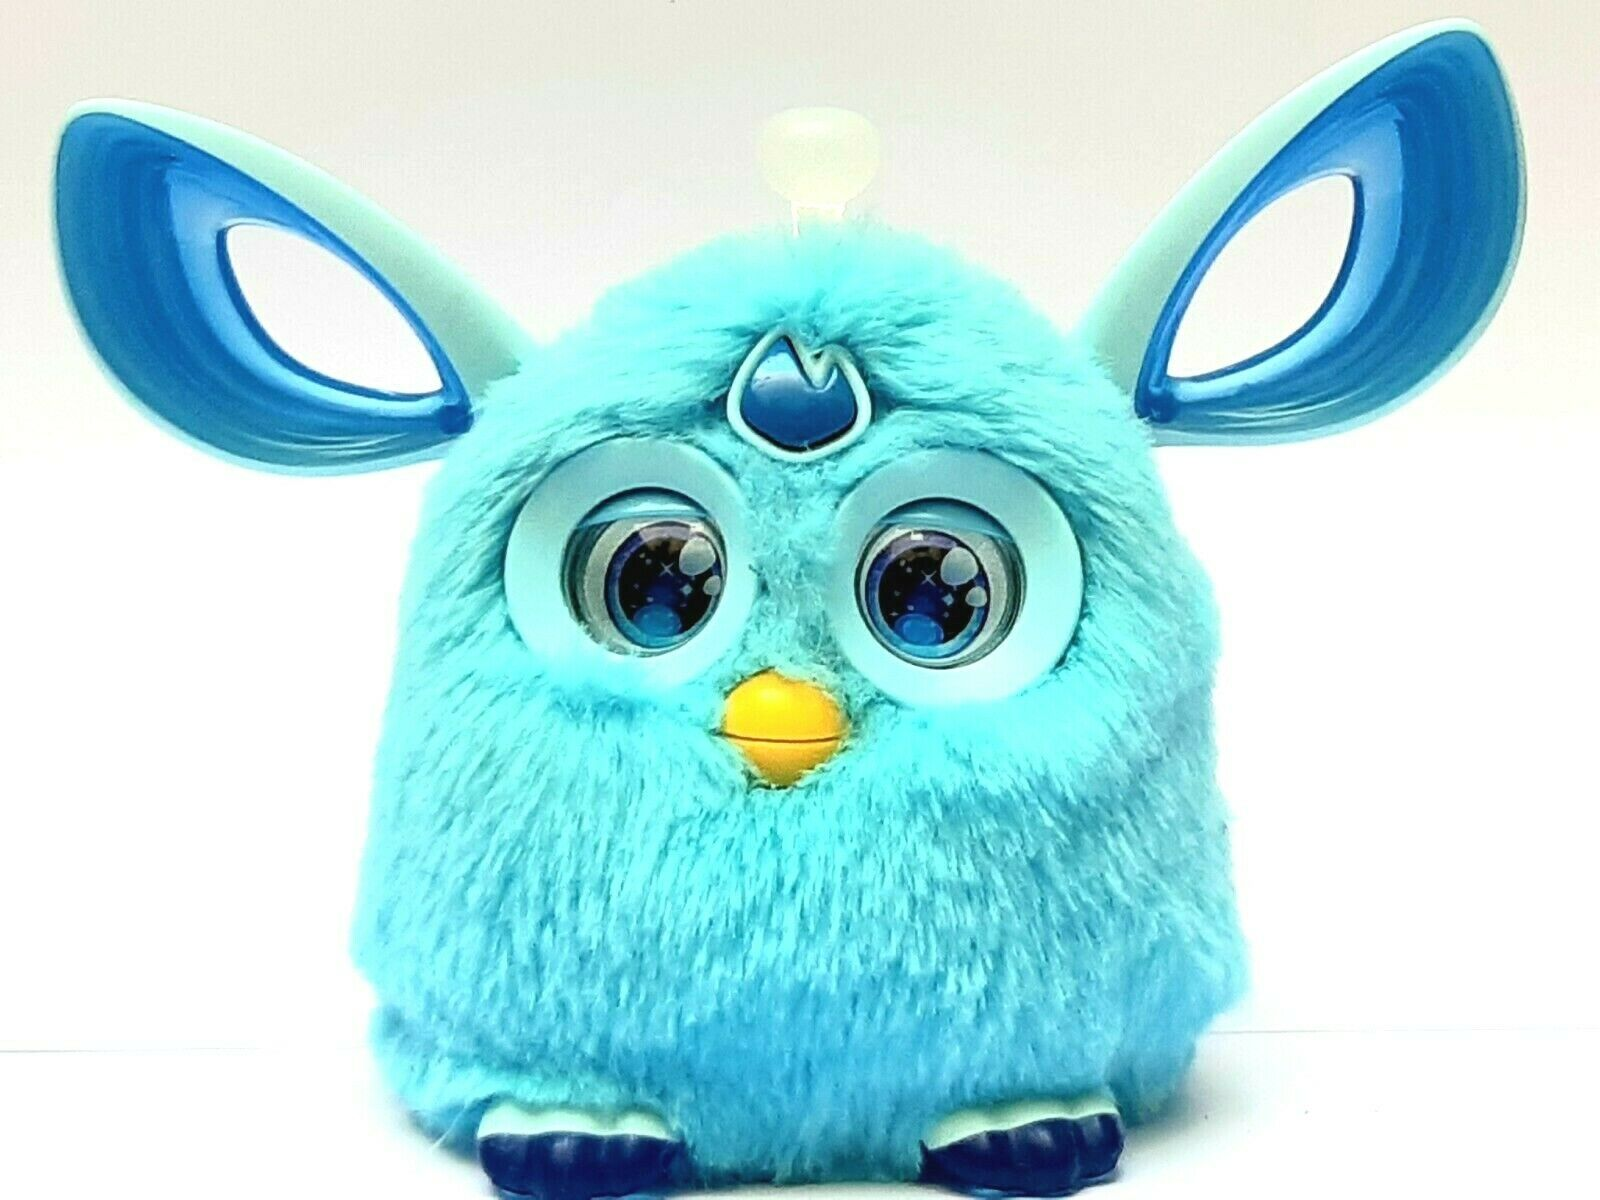 FURBY CONNECT TEAL Blau 2015 HASBRO BlauTOOTH EXCLUSIVE LAUNCH INTERACTIVE TOY